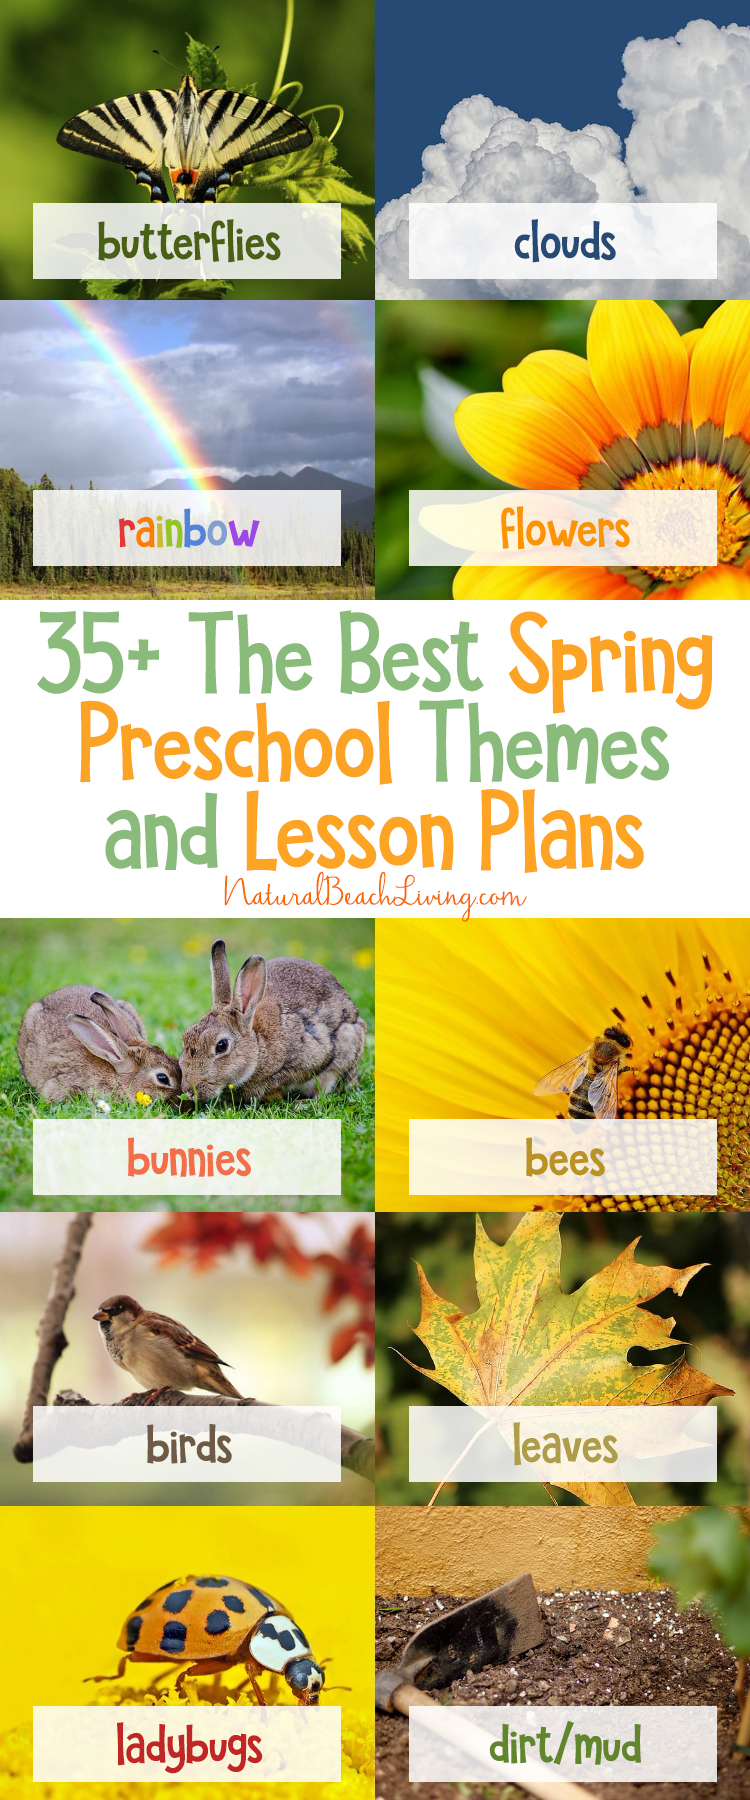 Spring Preschool Themes and Activities